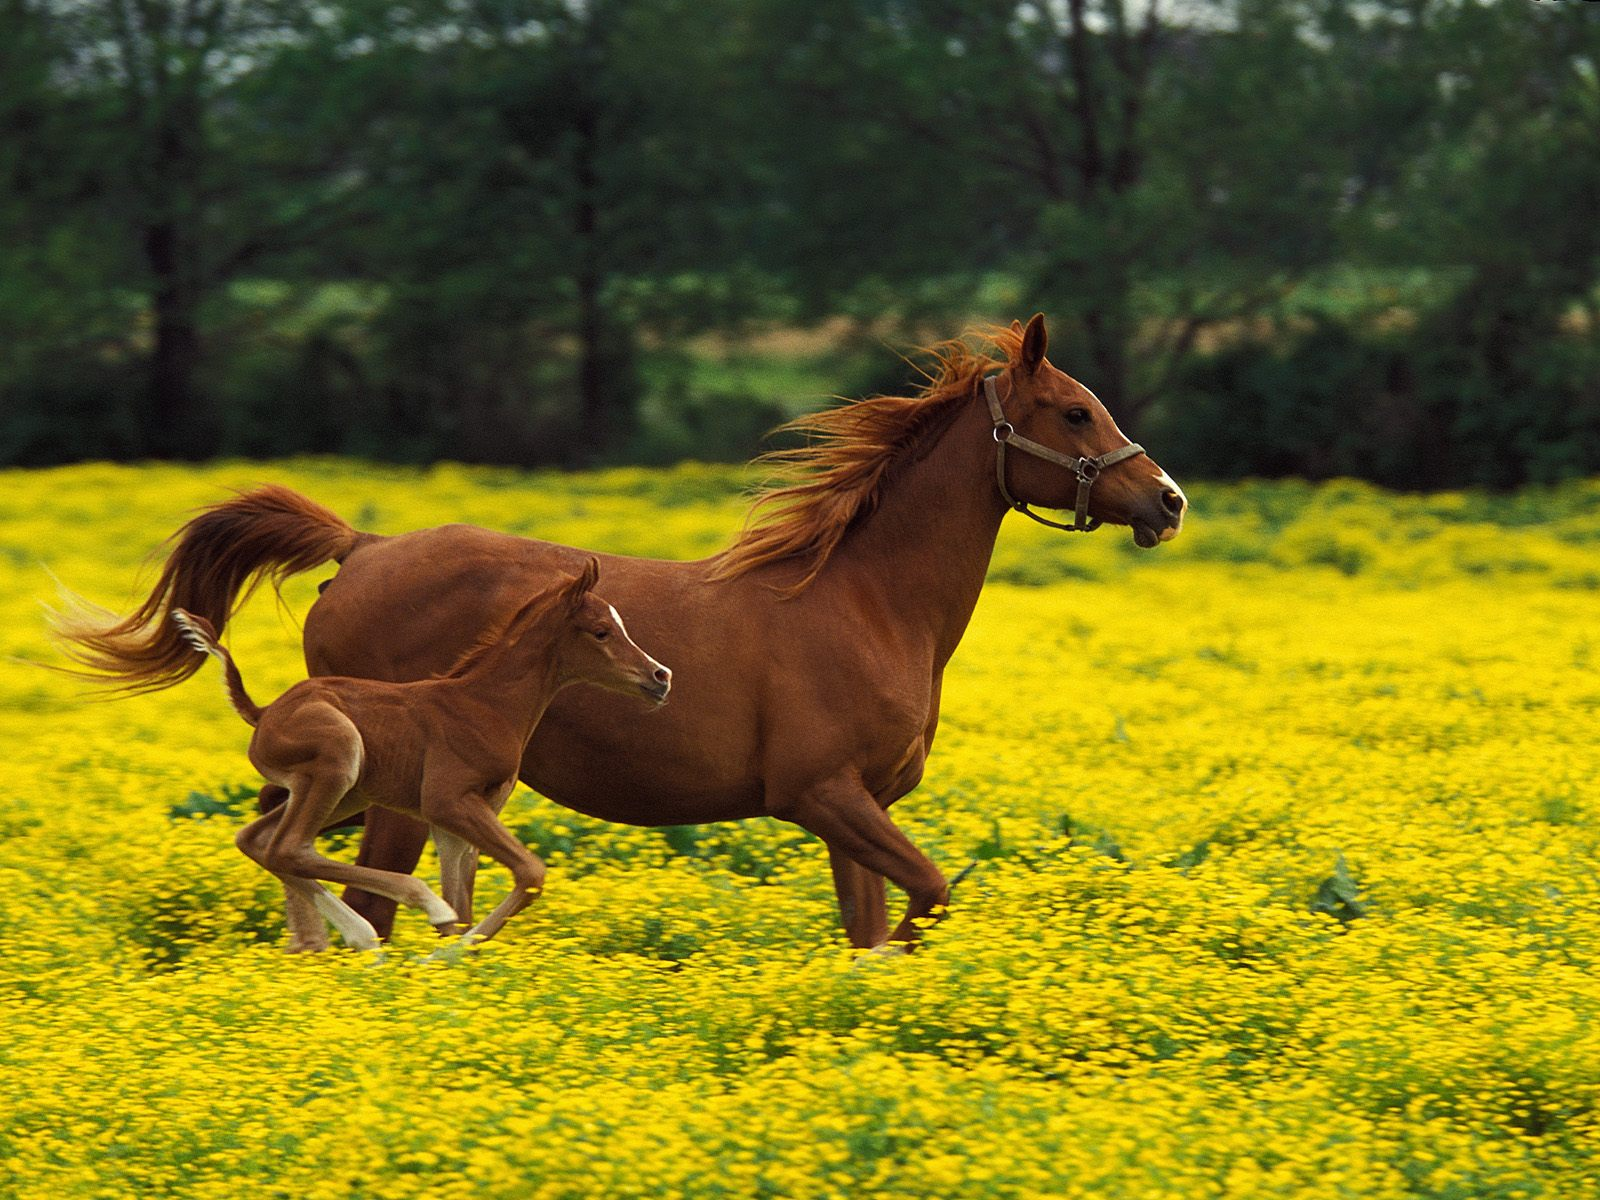 the wallpaper backgrounds free horse wallpaper